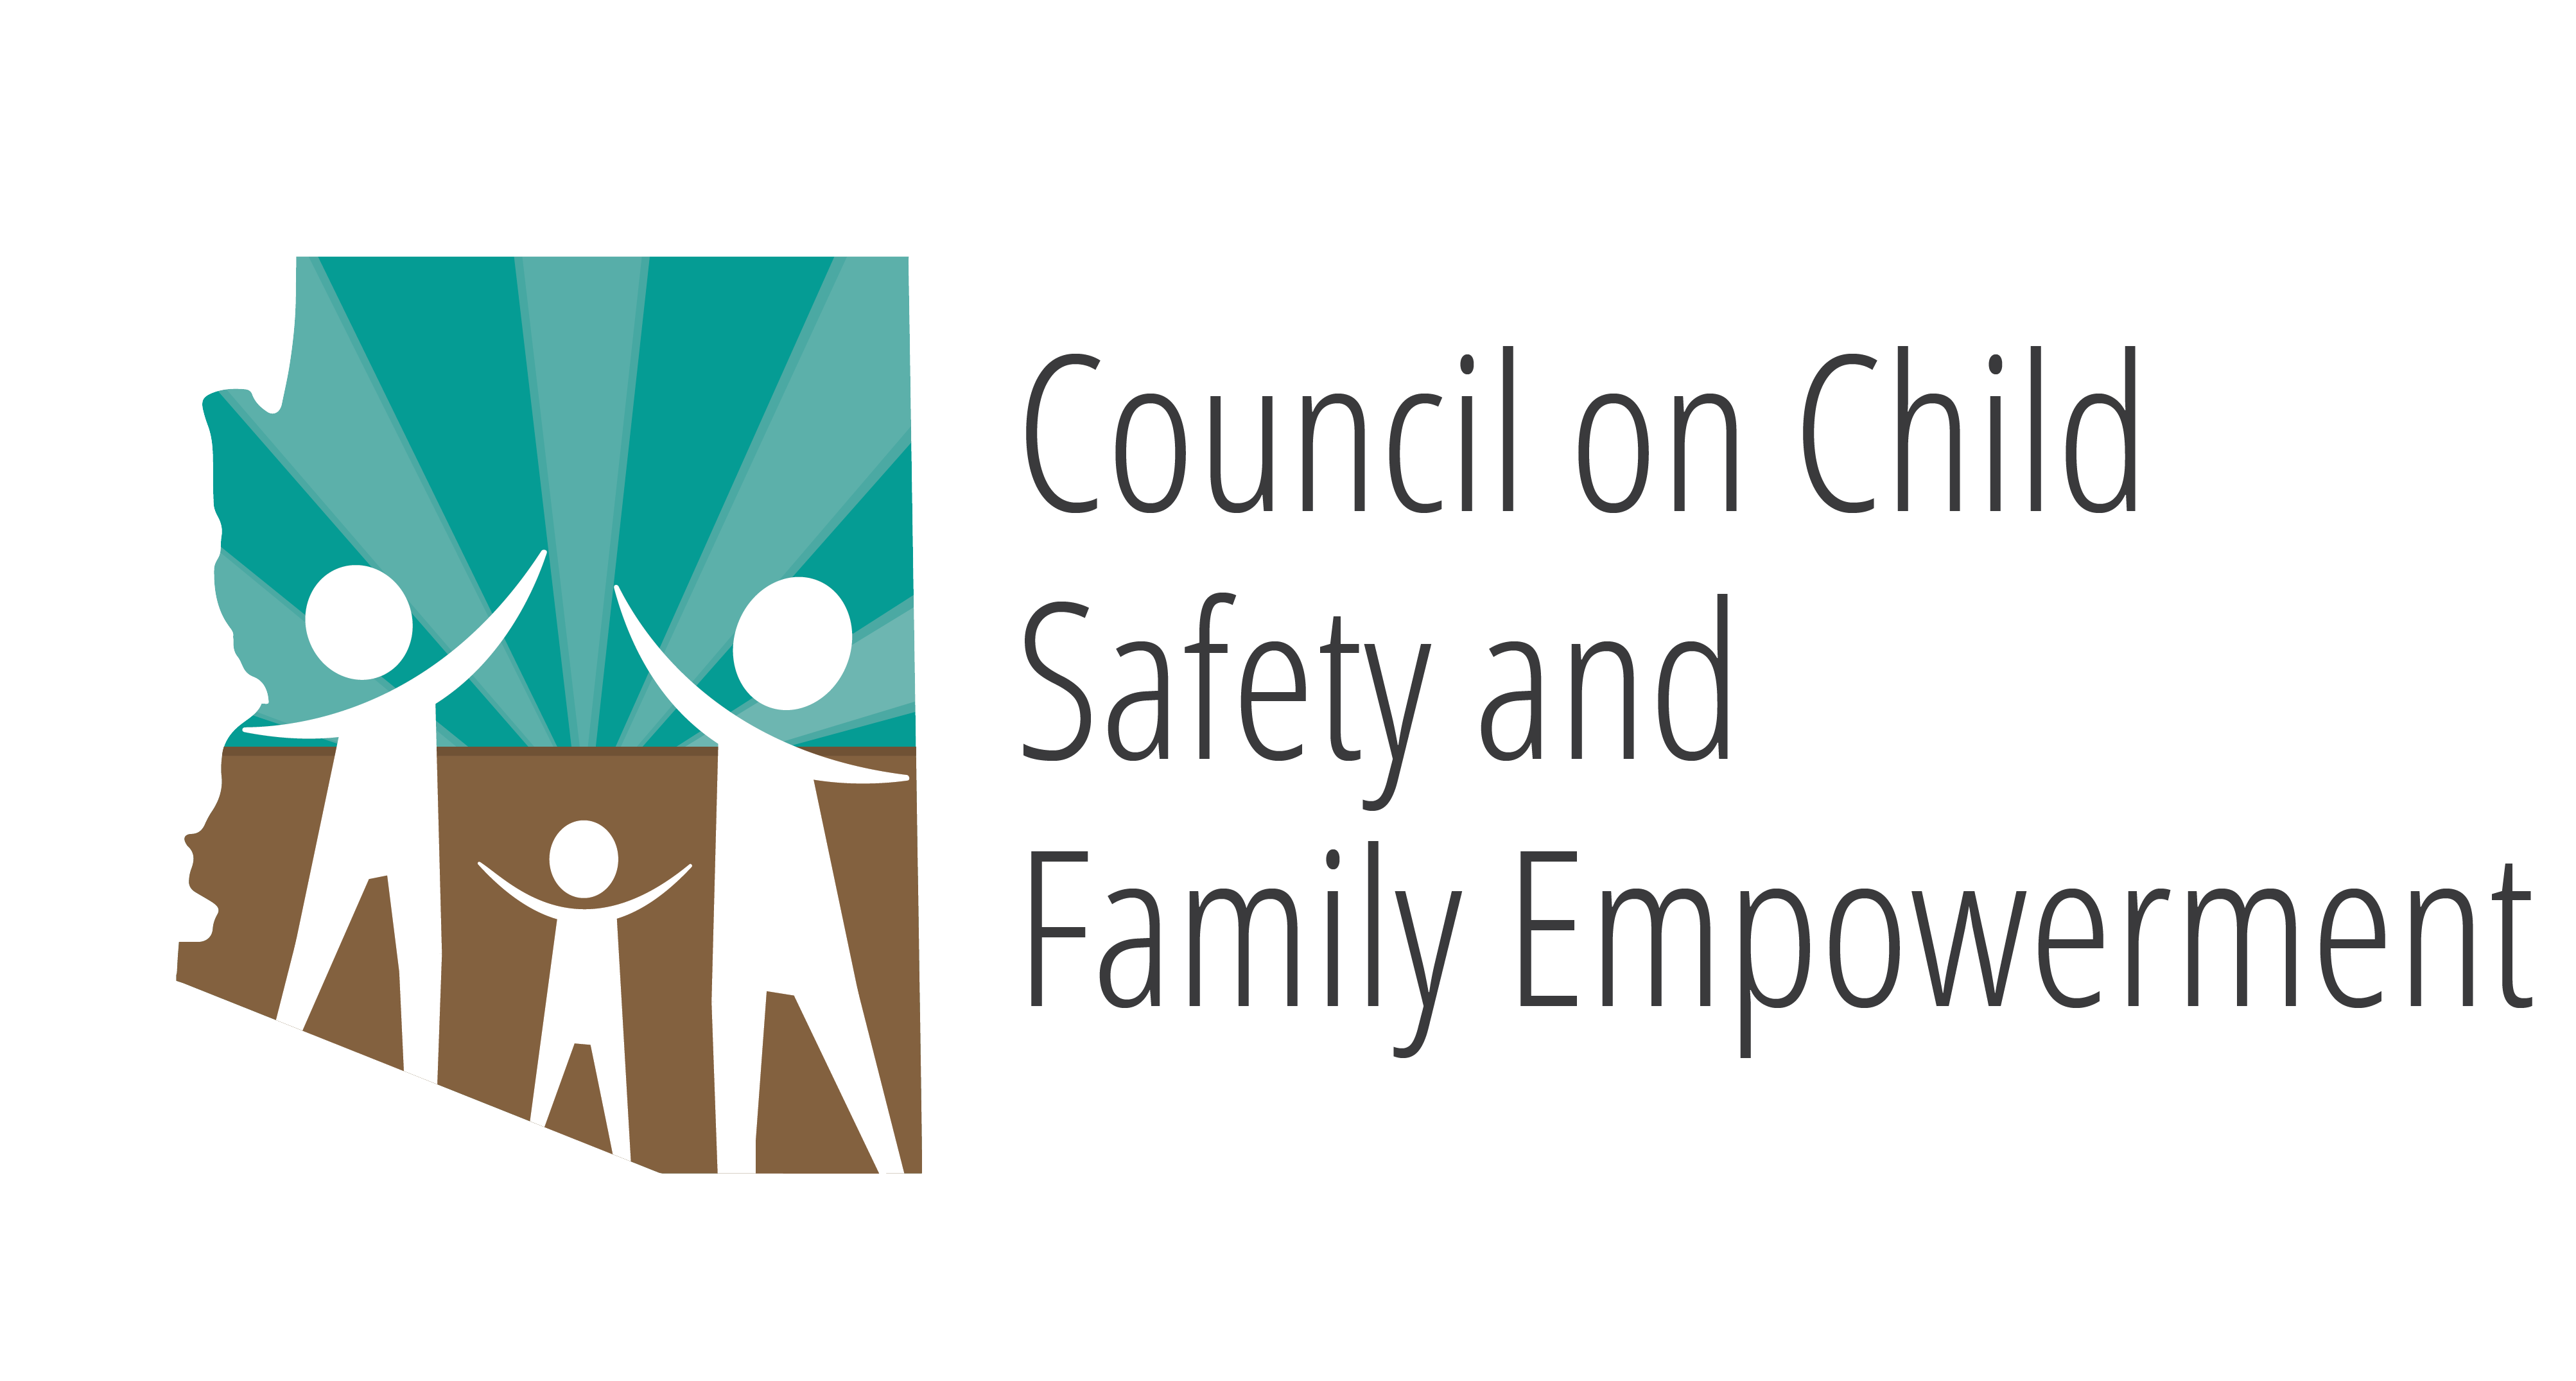 Council on Child Safety and Family Empowerment logo